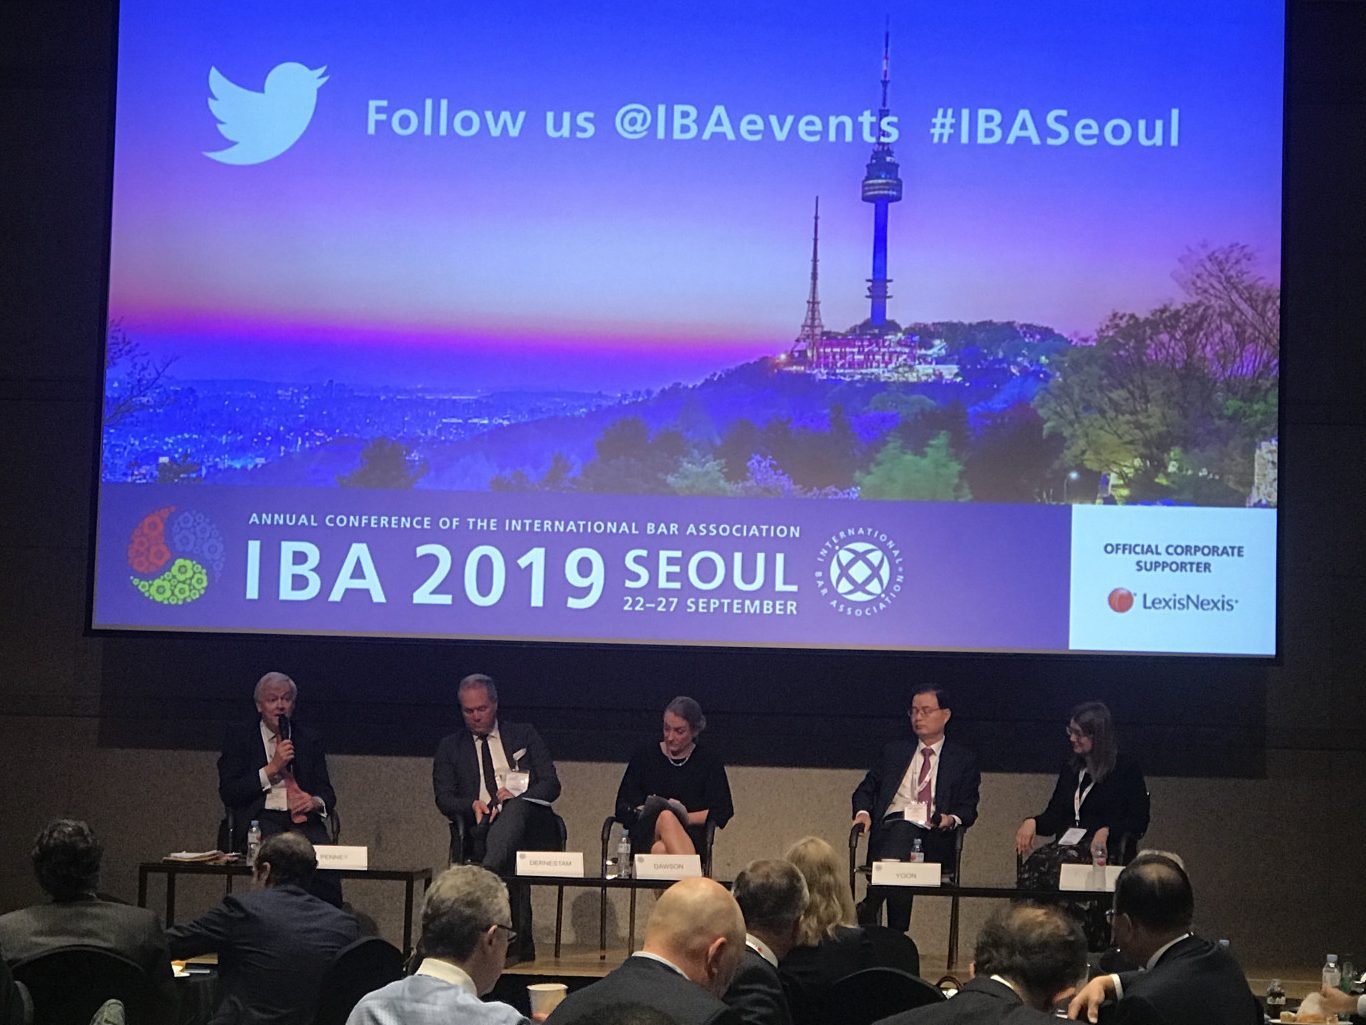 During the IBA 2019, partners of law firms discussed about management of a law firm